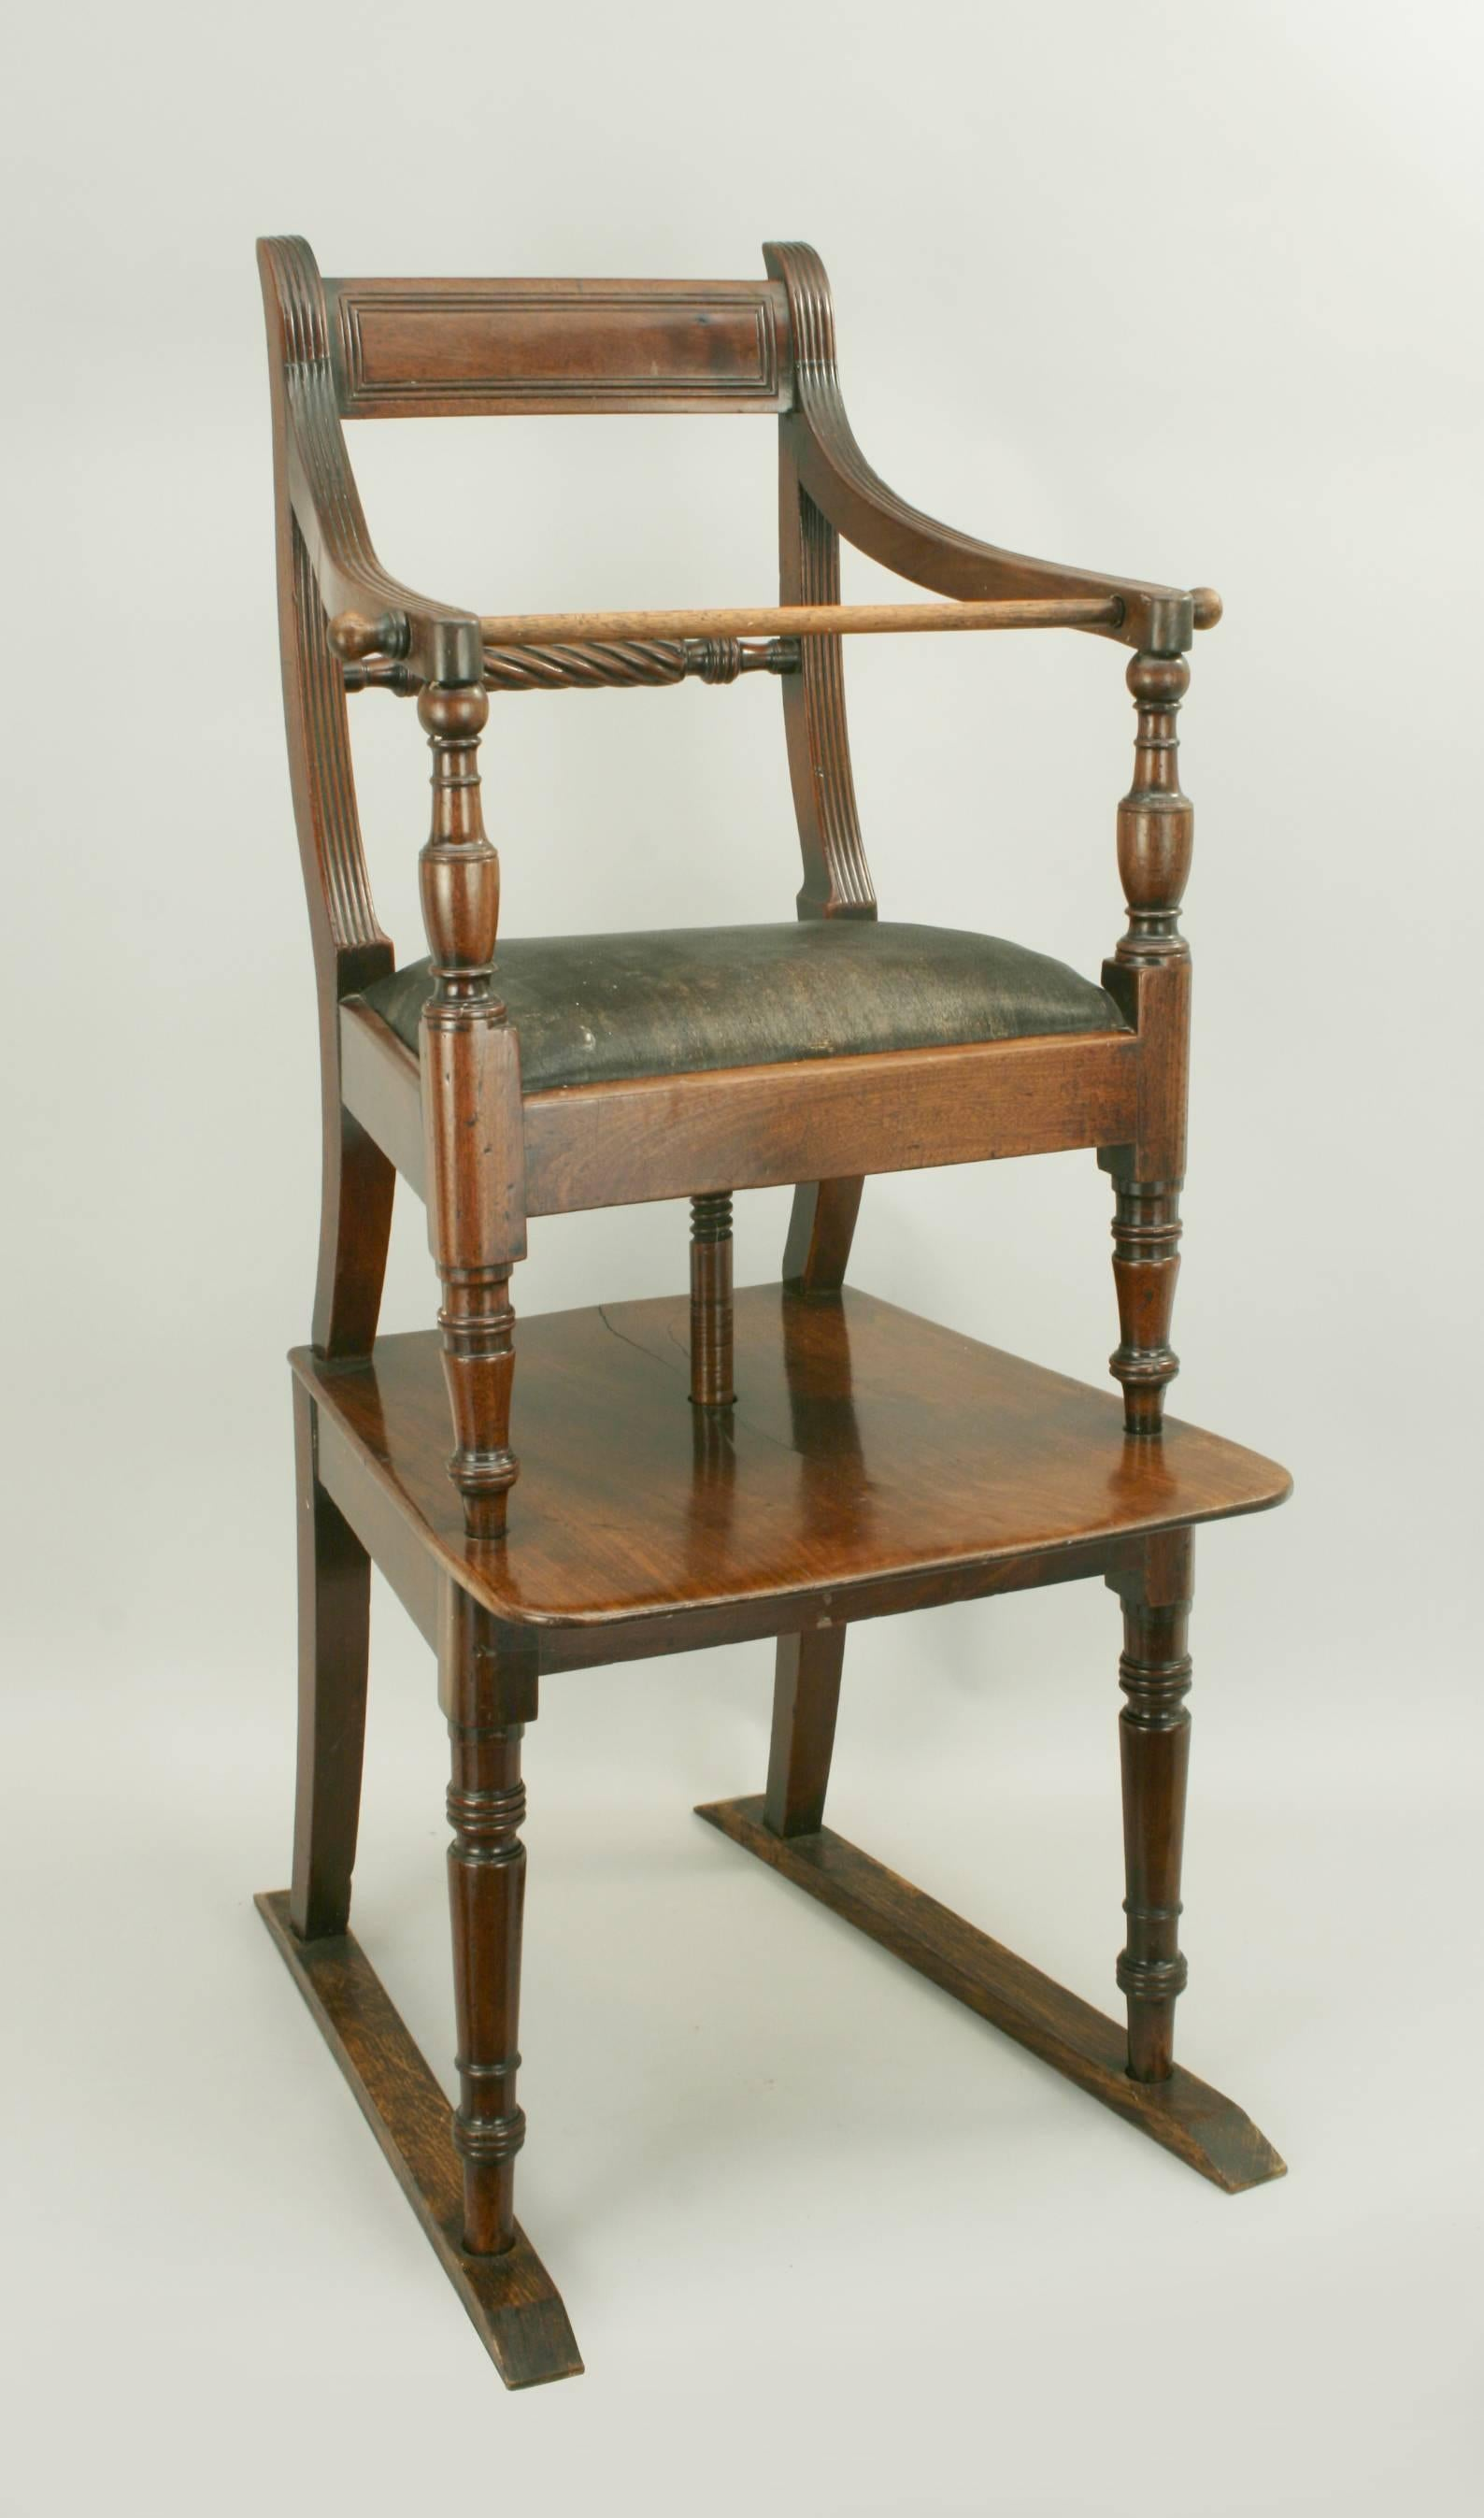 Mahogany Rope Back Childu0027s High Chair A Mahogany Regency Childu0027s Highchair  With Wonderful Color And Patination